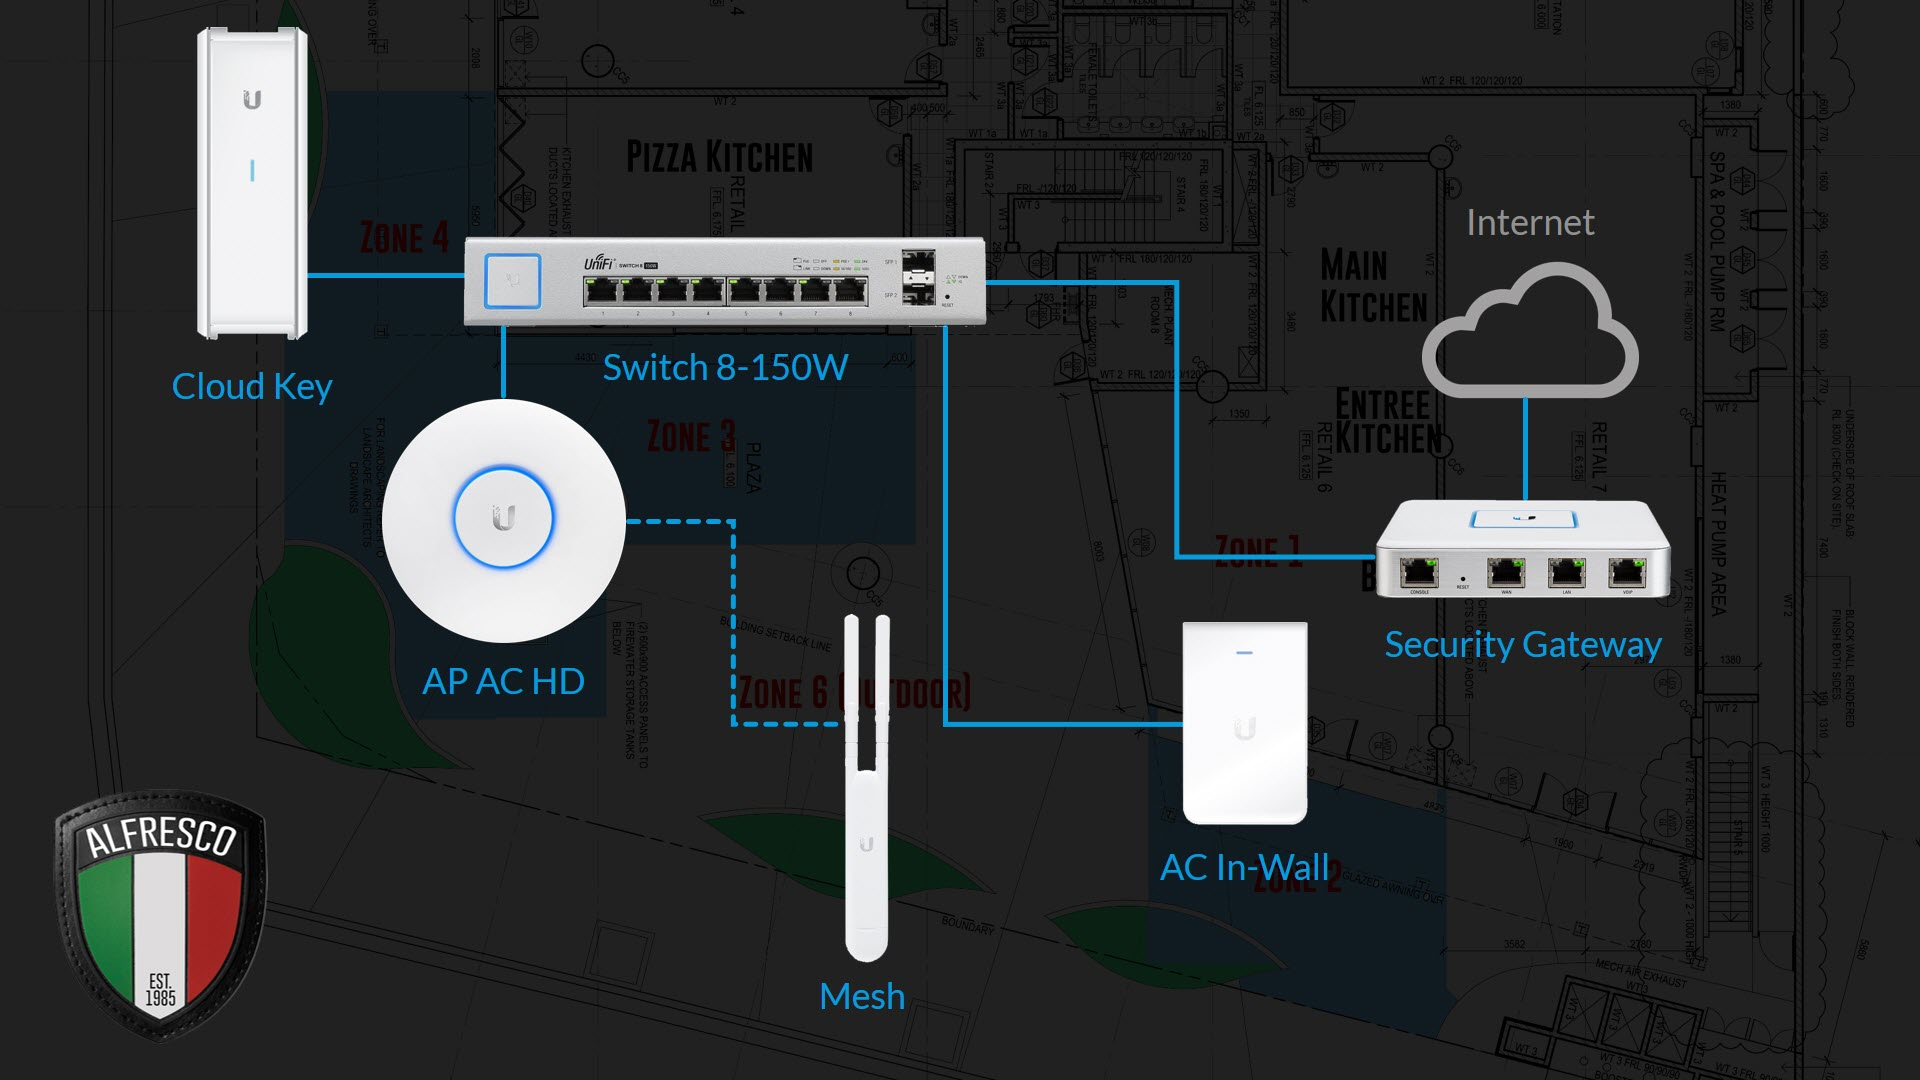 Free Course: Here's What This Ubiquiti UniFi Stuff Is All About